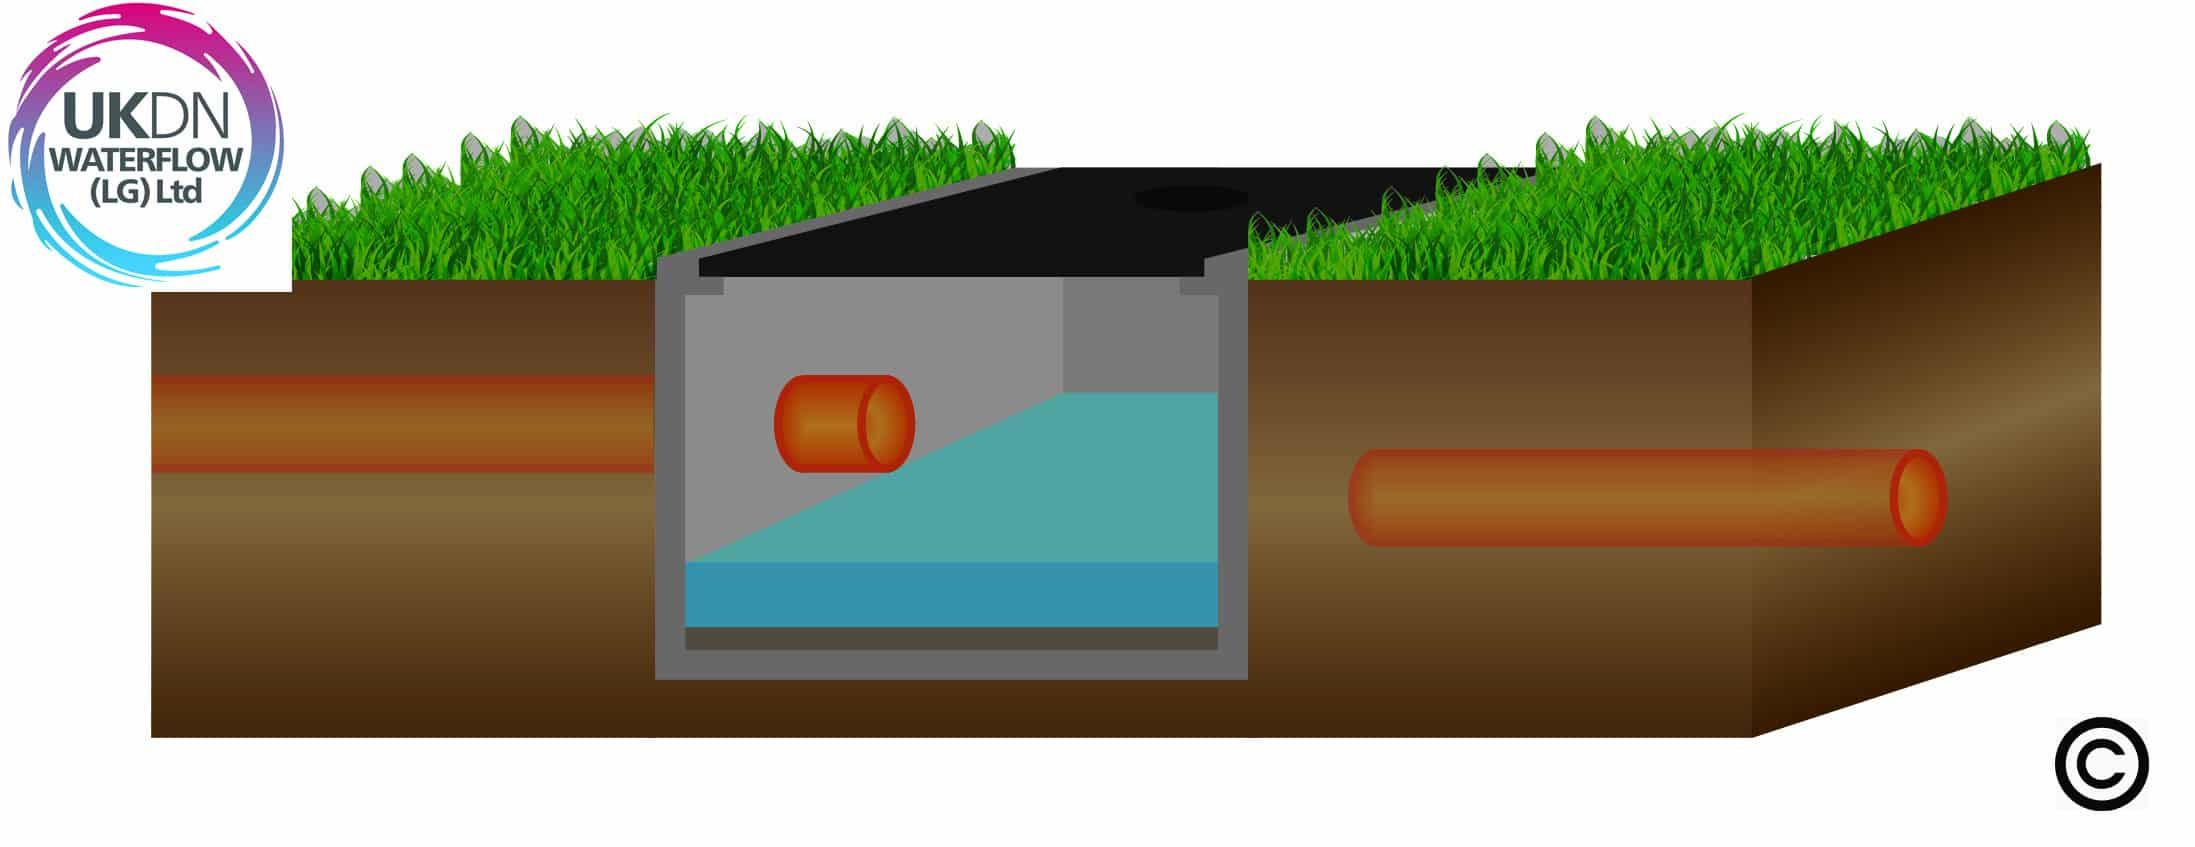 What is a Catch Pit? – Advice – UKDN Waterflow (LG)